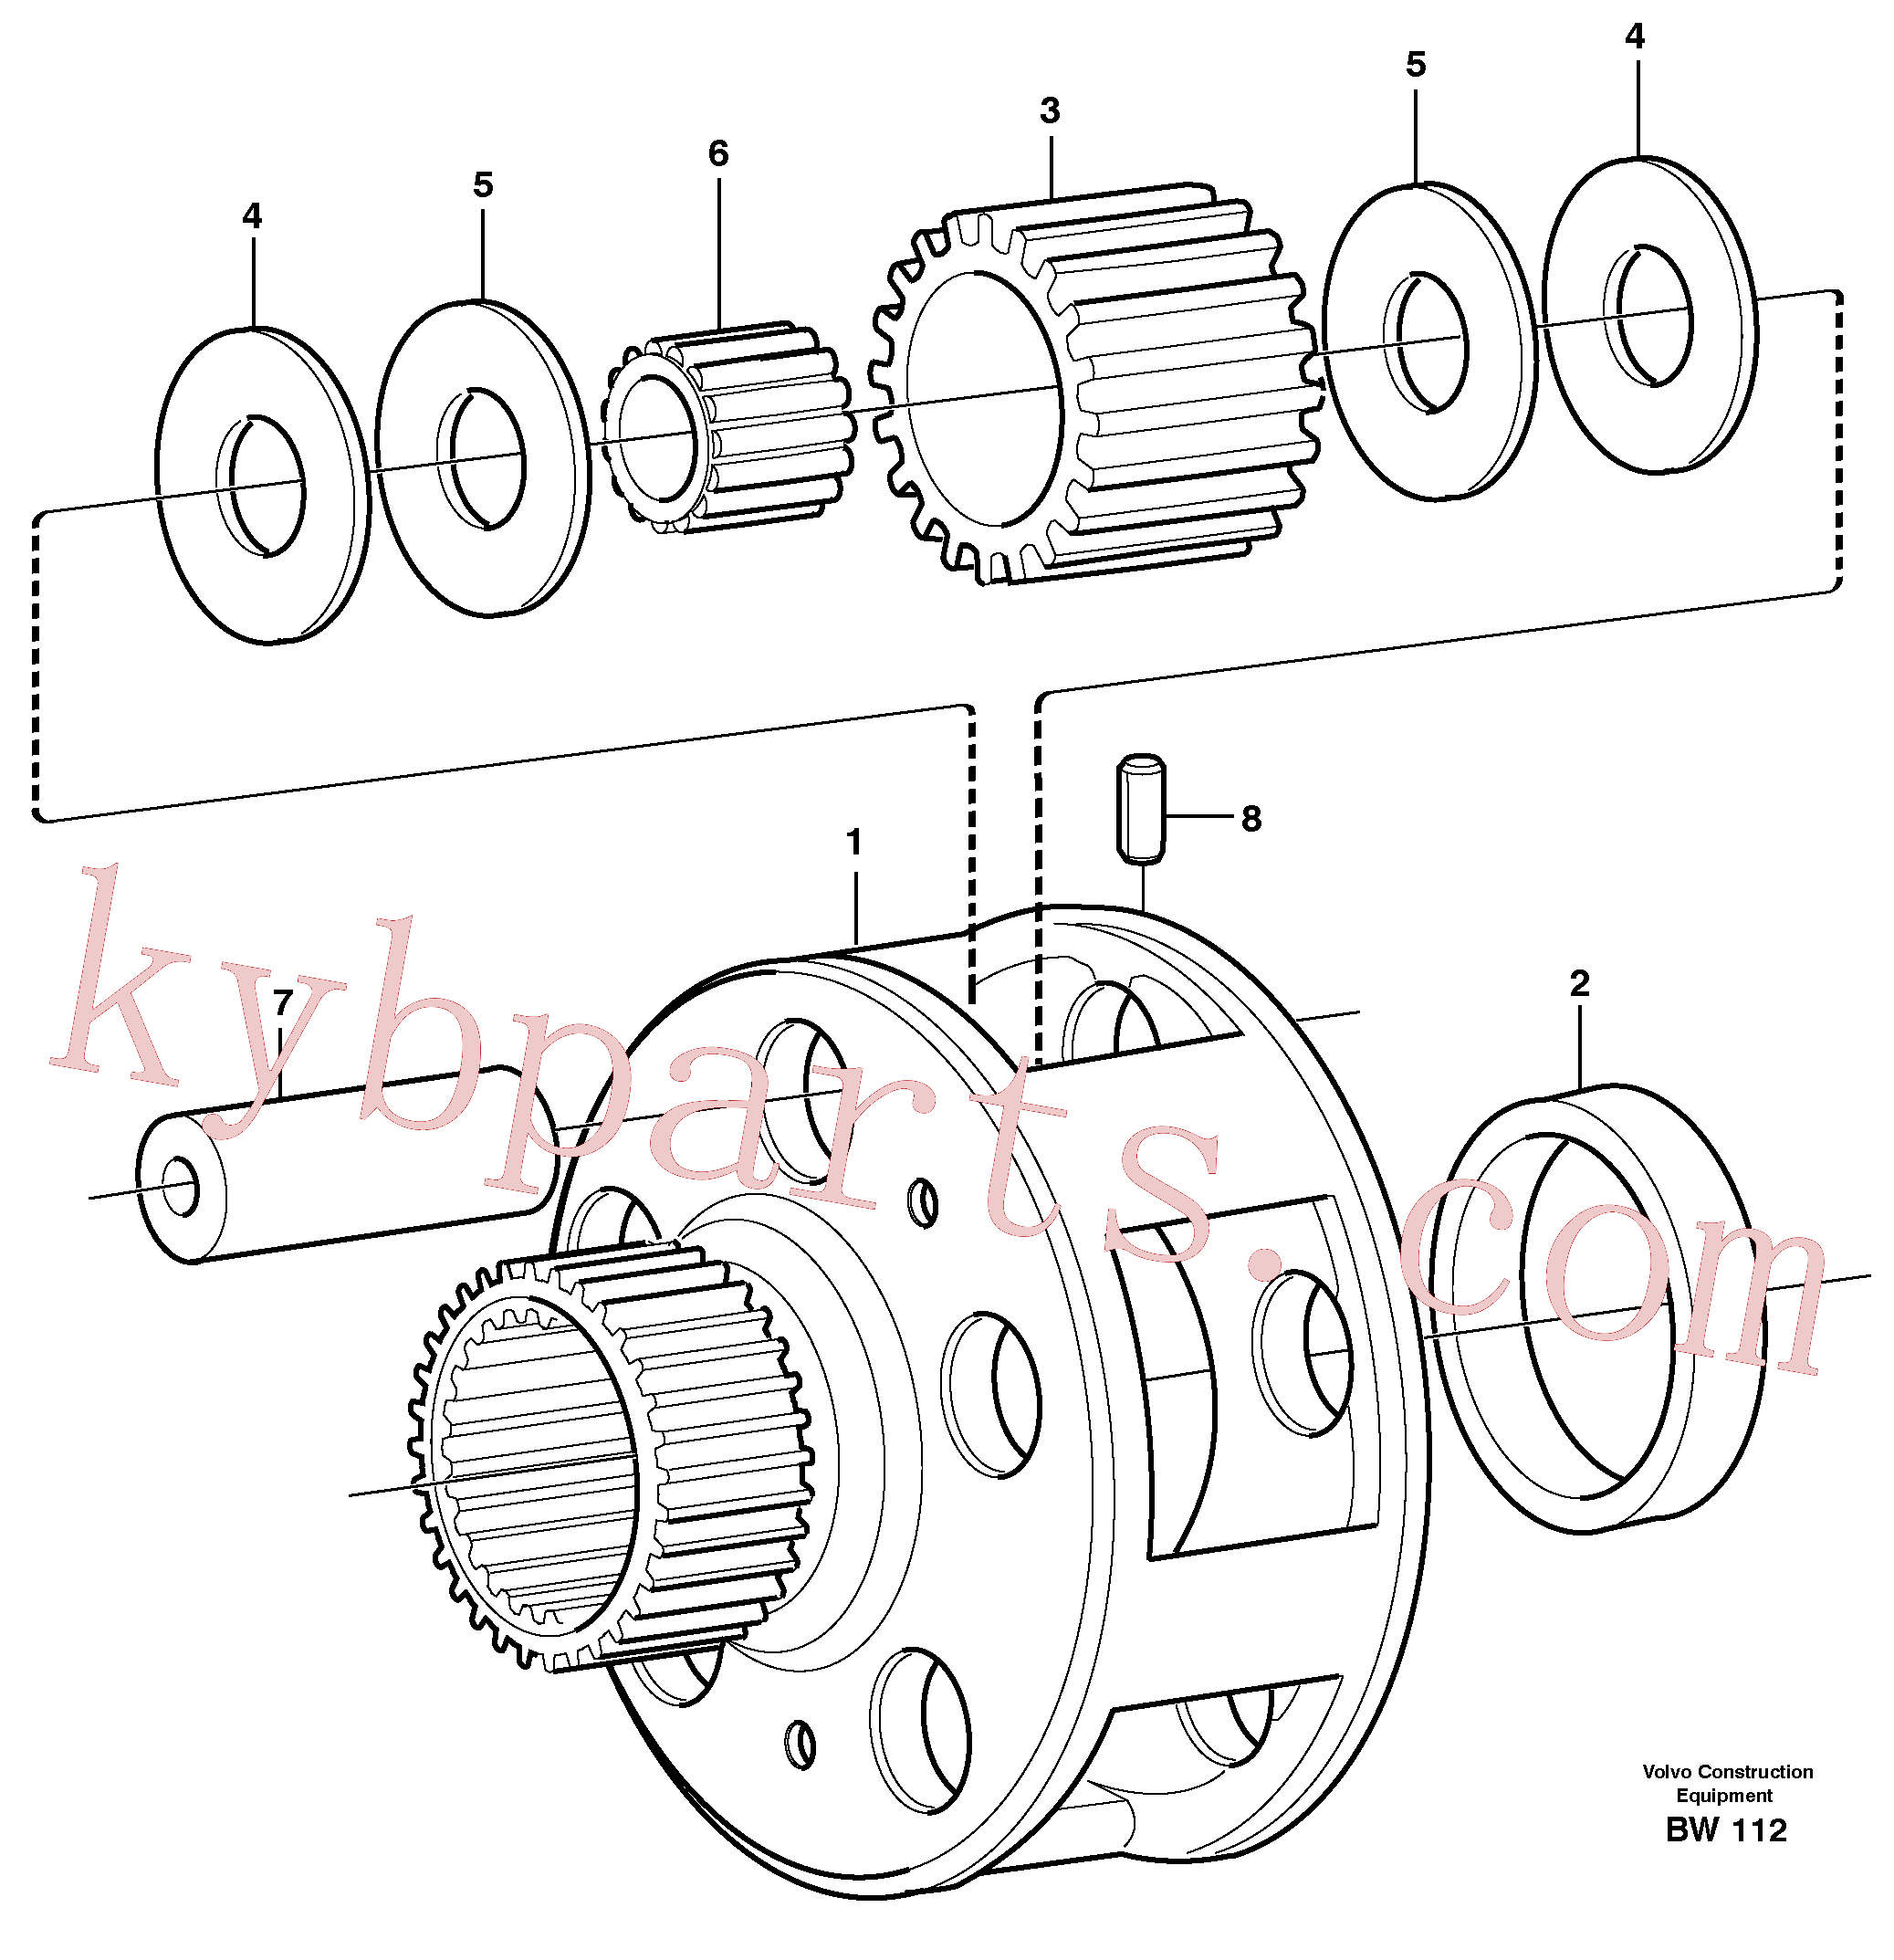 VOE11036759 for Volvo Planet kit, stage 4(BW112 assembly)